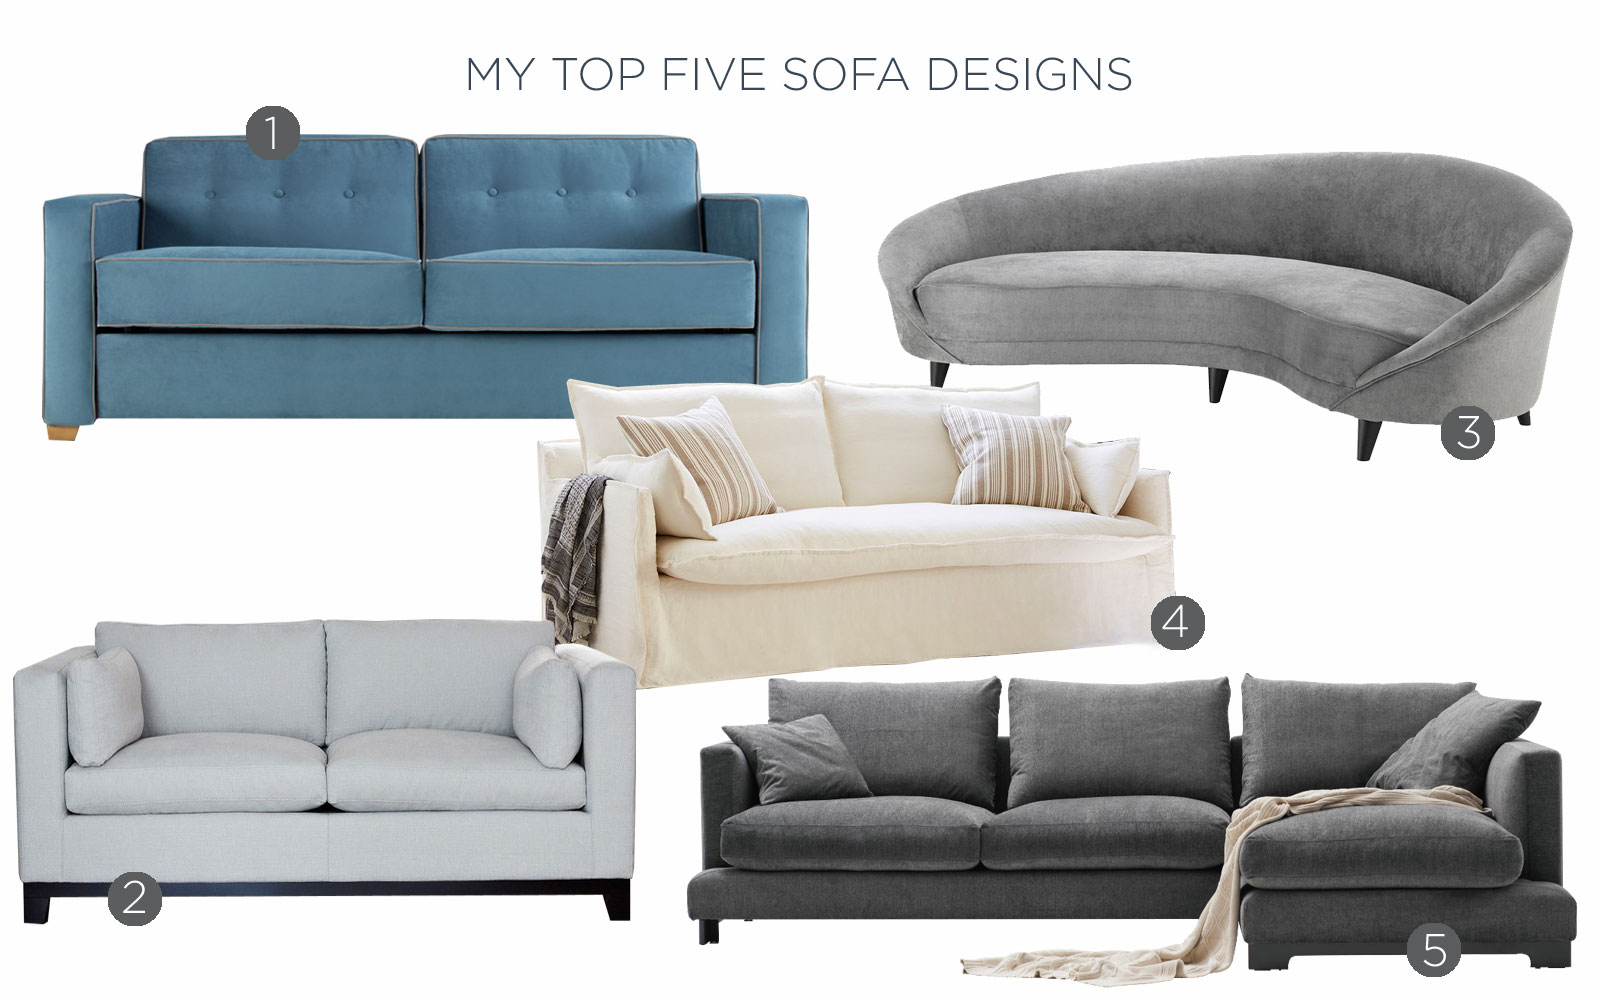 sofa designs, sofa design, sofas, sofa, comfy sofa, stylish sofa